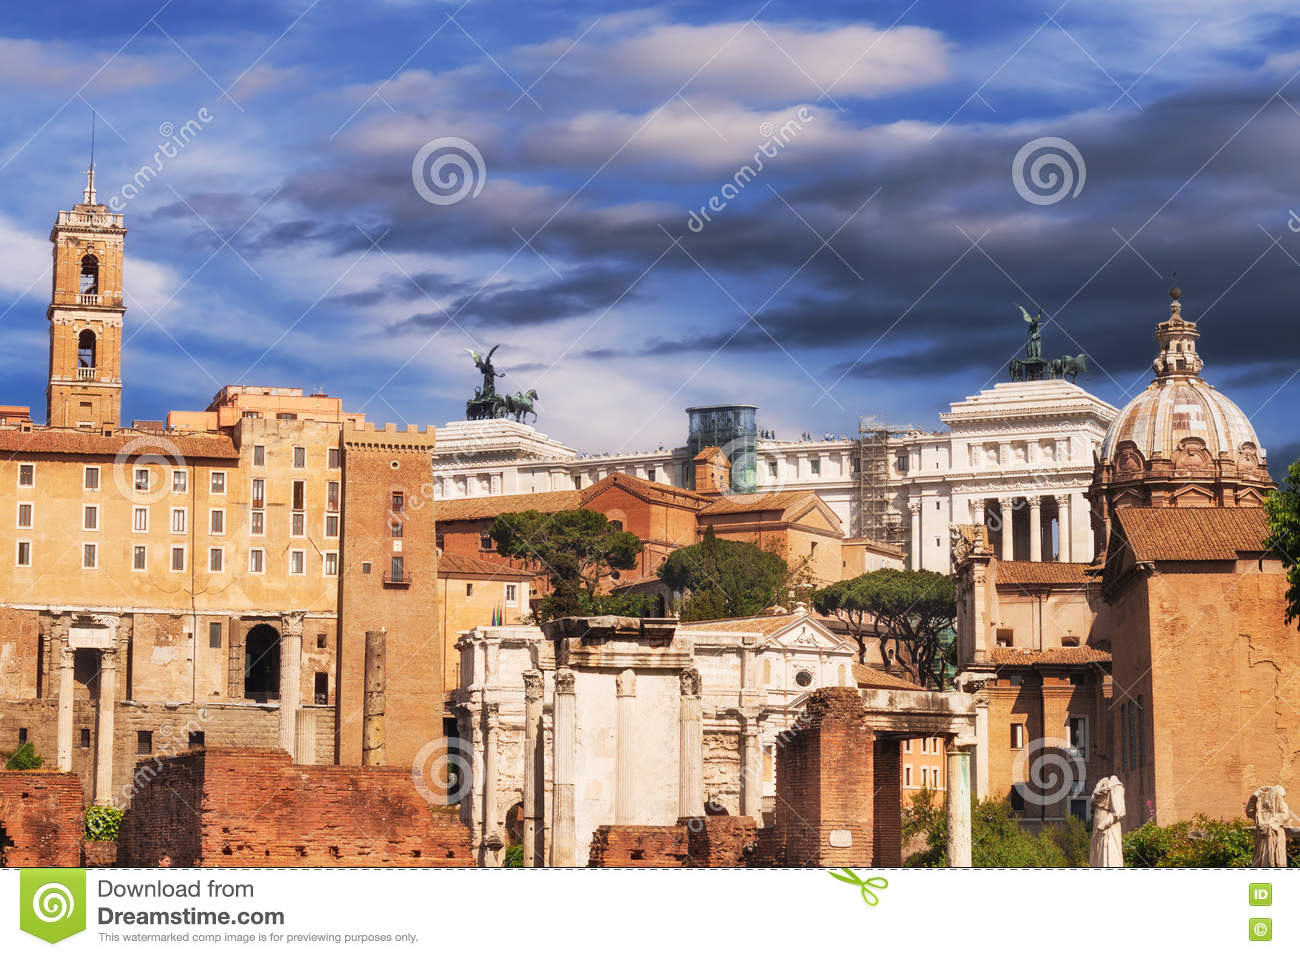 rome the power and glory an essay on the history of rome History: christian term papers (paper 11048) on rome : between the first and fourth centuries christianity gradually became the prevailing religion of rome the burden of how to respond to this new reli term paper 11048.